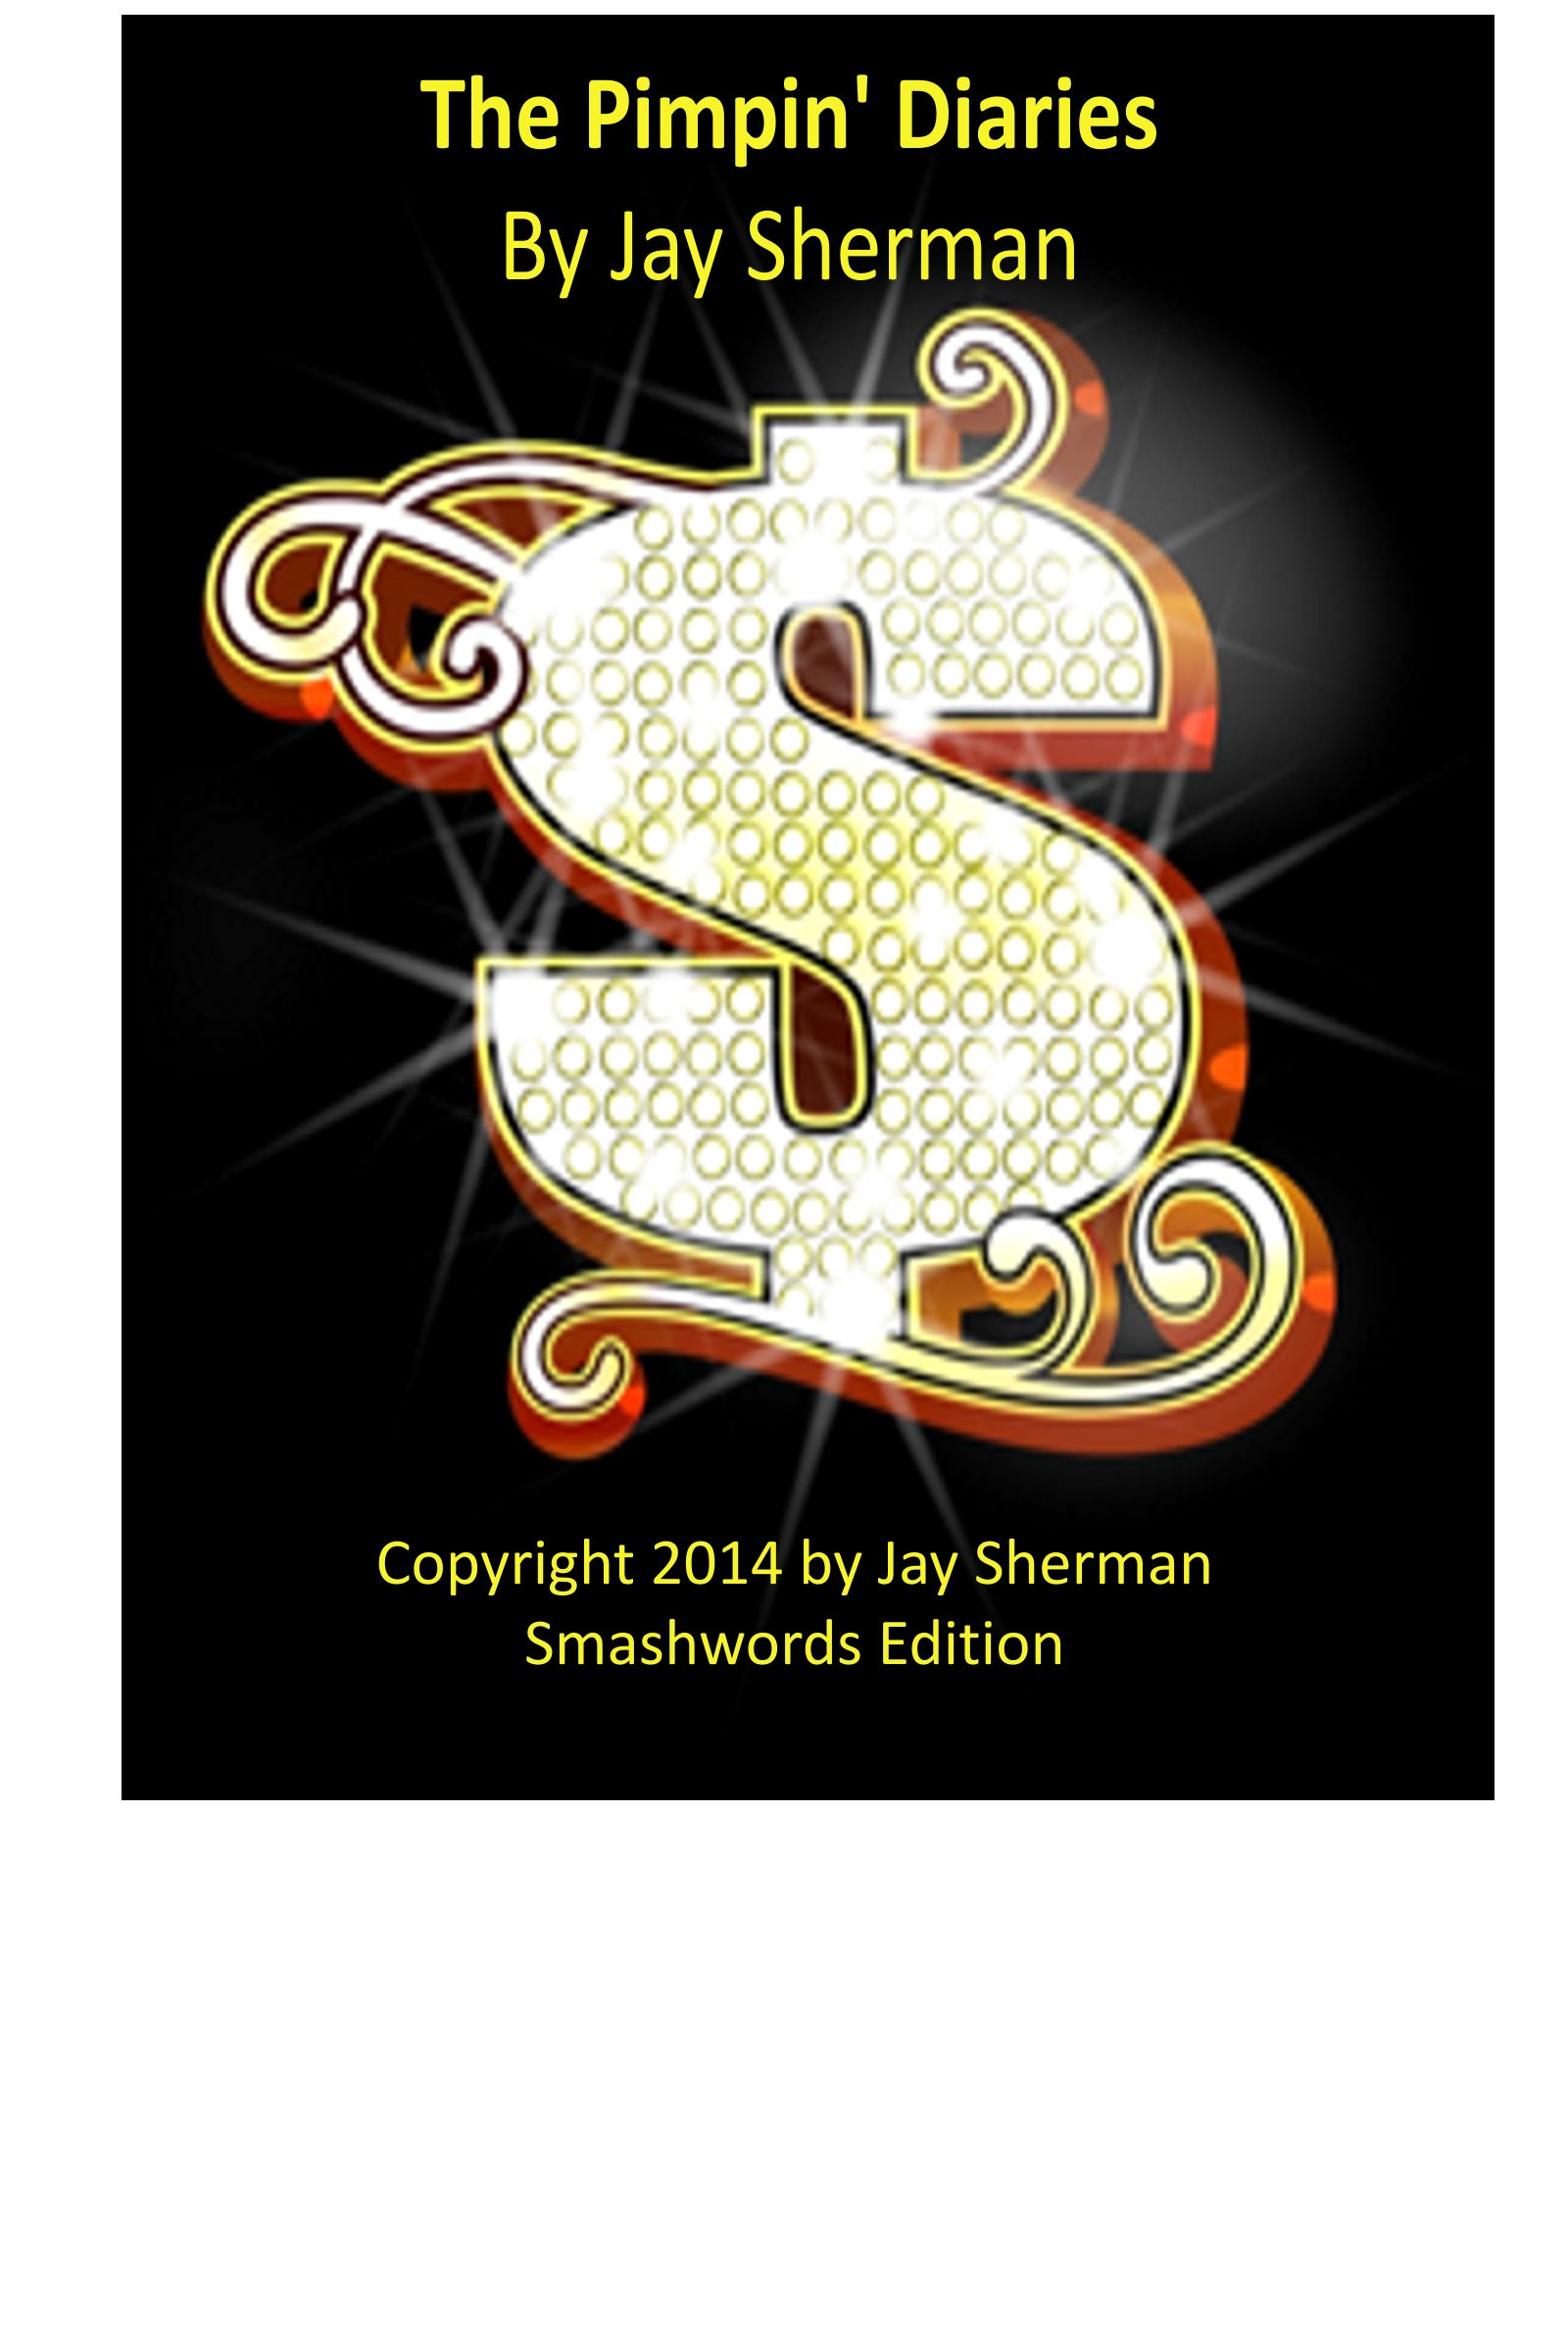 The Pimpin' Diaries, an Ebook by Jay Sherman